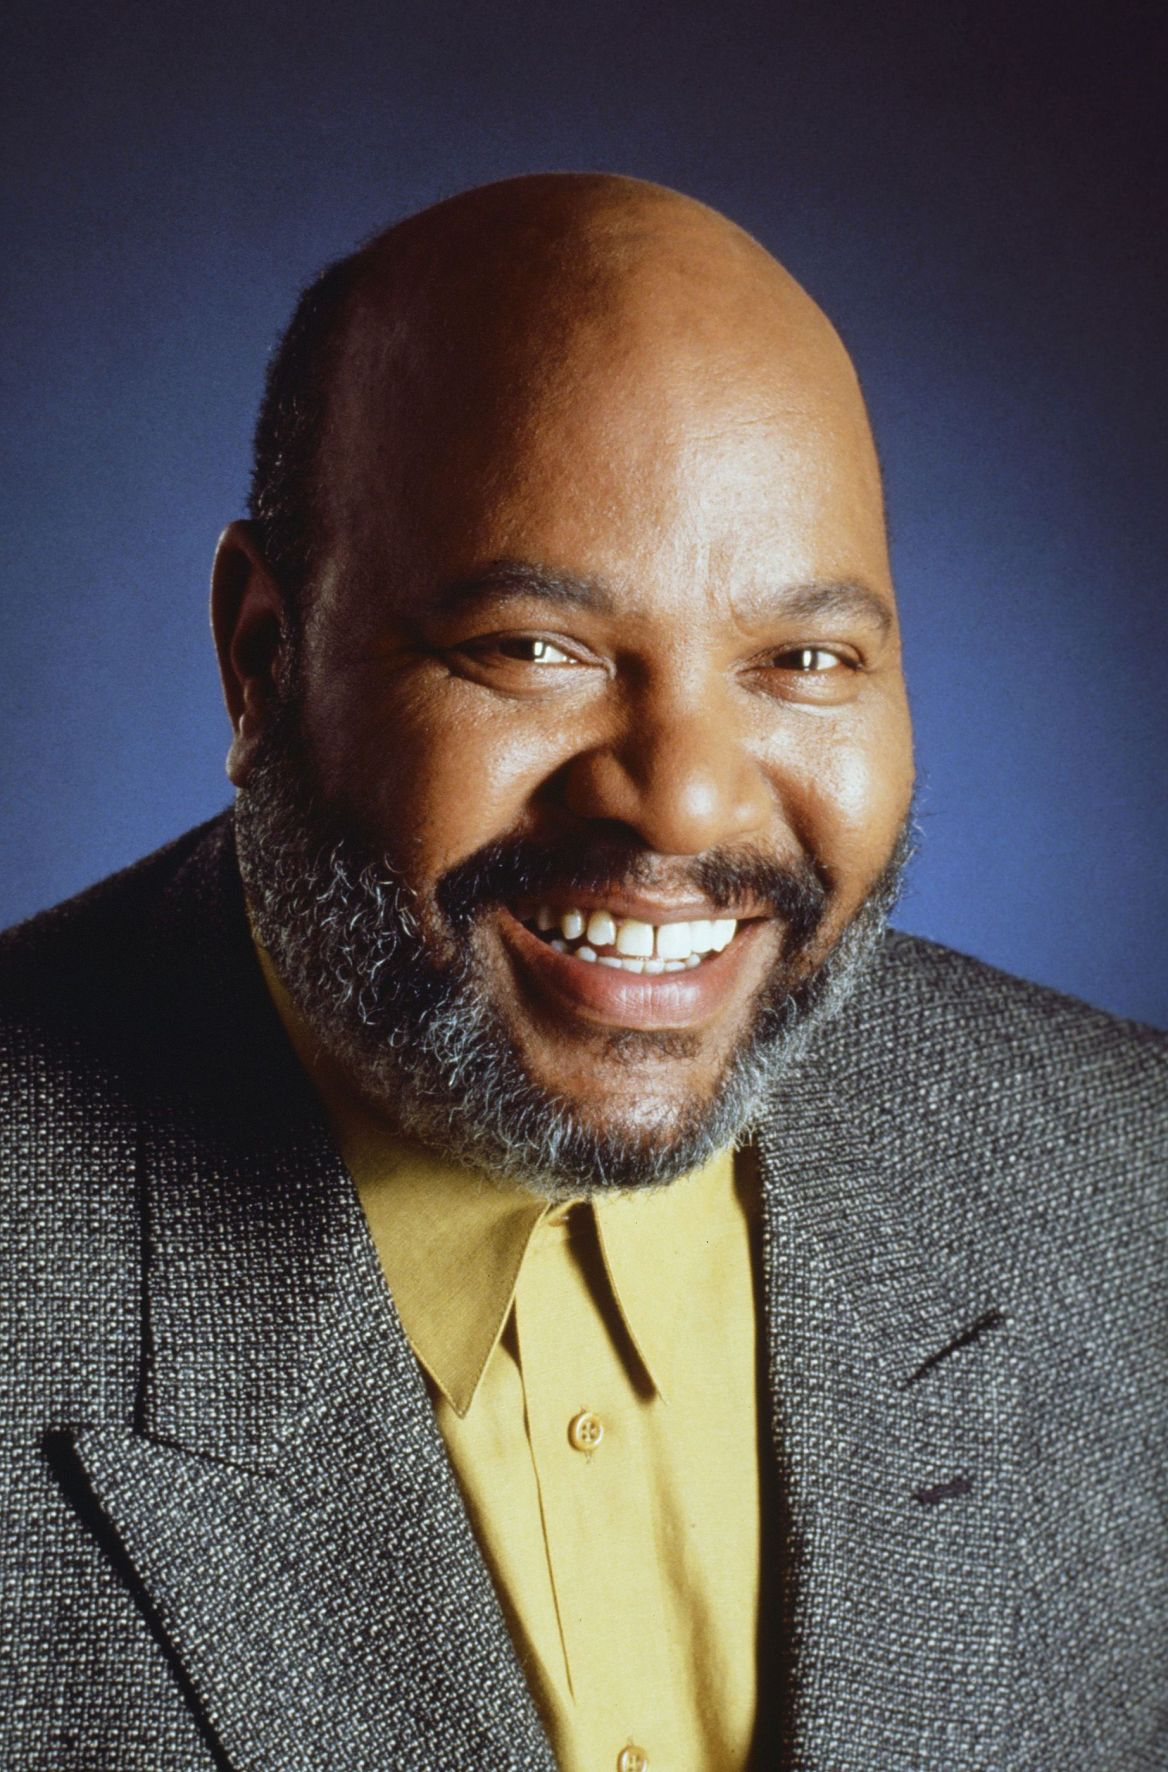 James Avery of 'Fresh Prince of Bel-Air' fame dead at 68